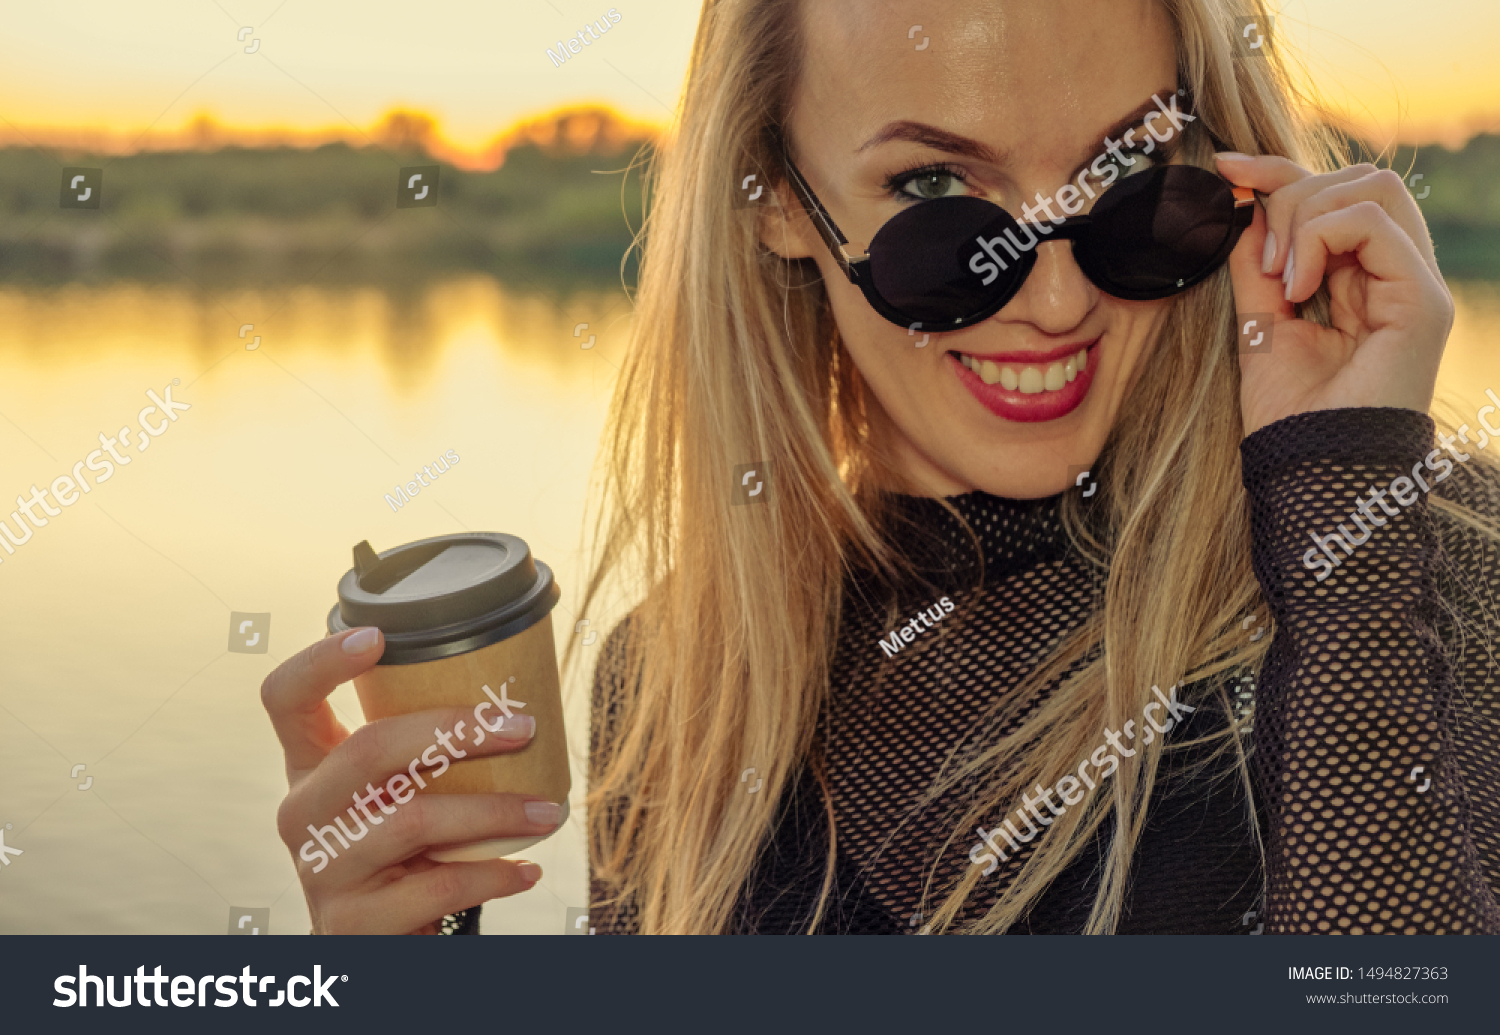 Closeup outdoor portrait of cute happy blonde Caucasian adult woman in happy state with takeaway coffee. Young woman with long hair wearing sunglasses in her 30s posing outside in front of sunset lake